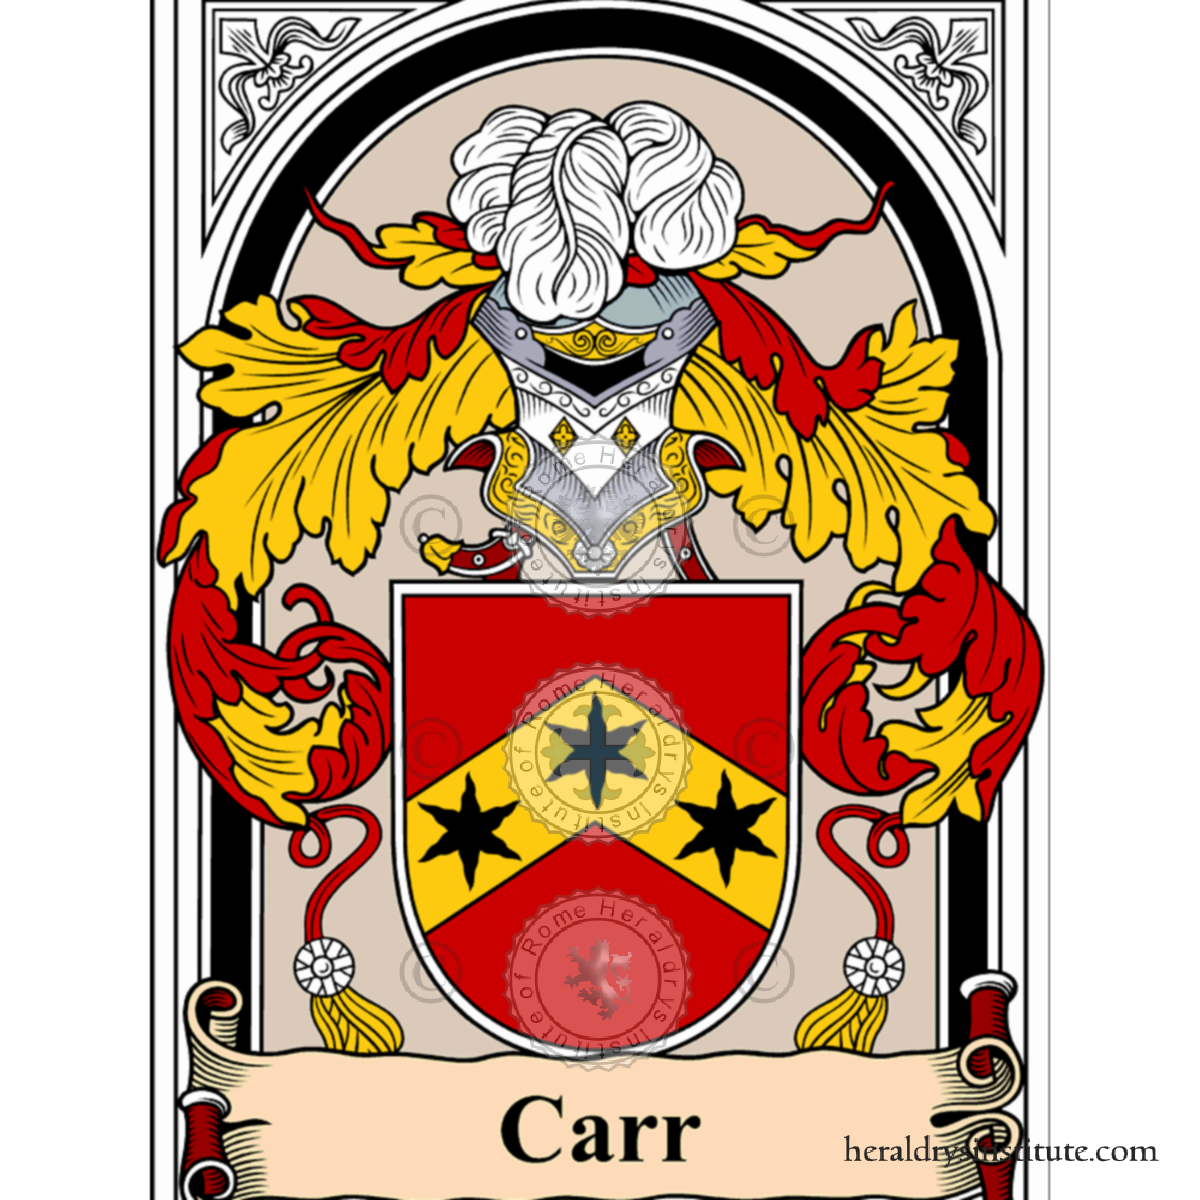 Carr family, heraldry, genealogy, Coat of arms and last name